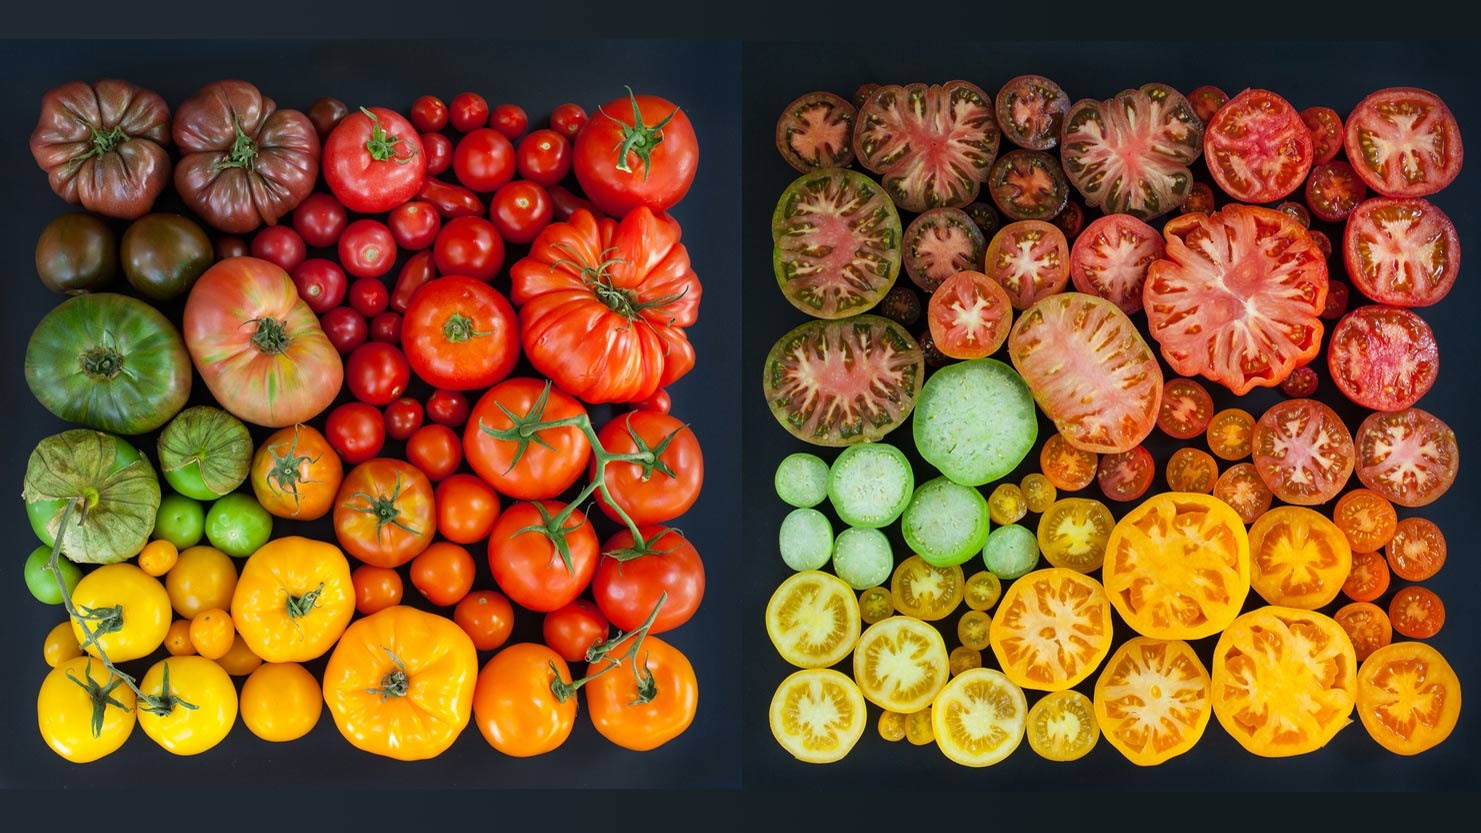 Photographers Perfect Arrangements Series Highlights Color and Simplicity